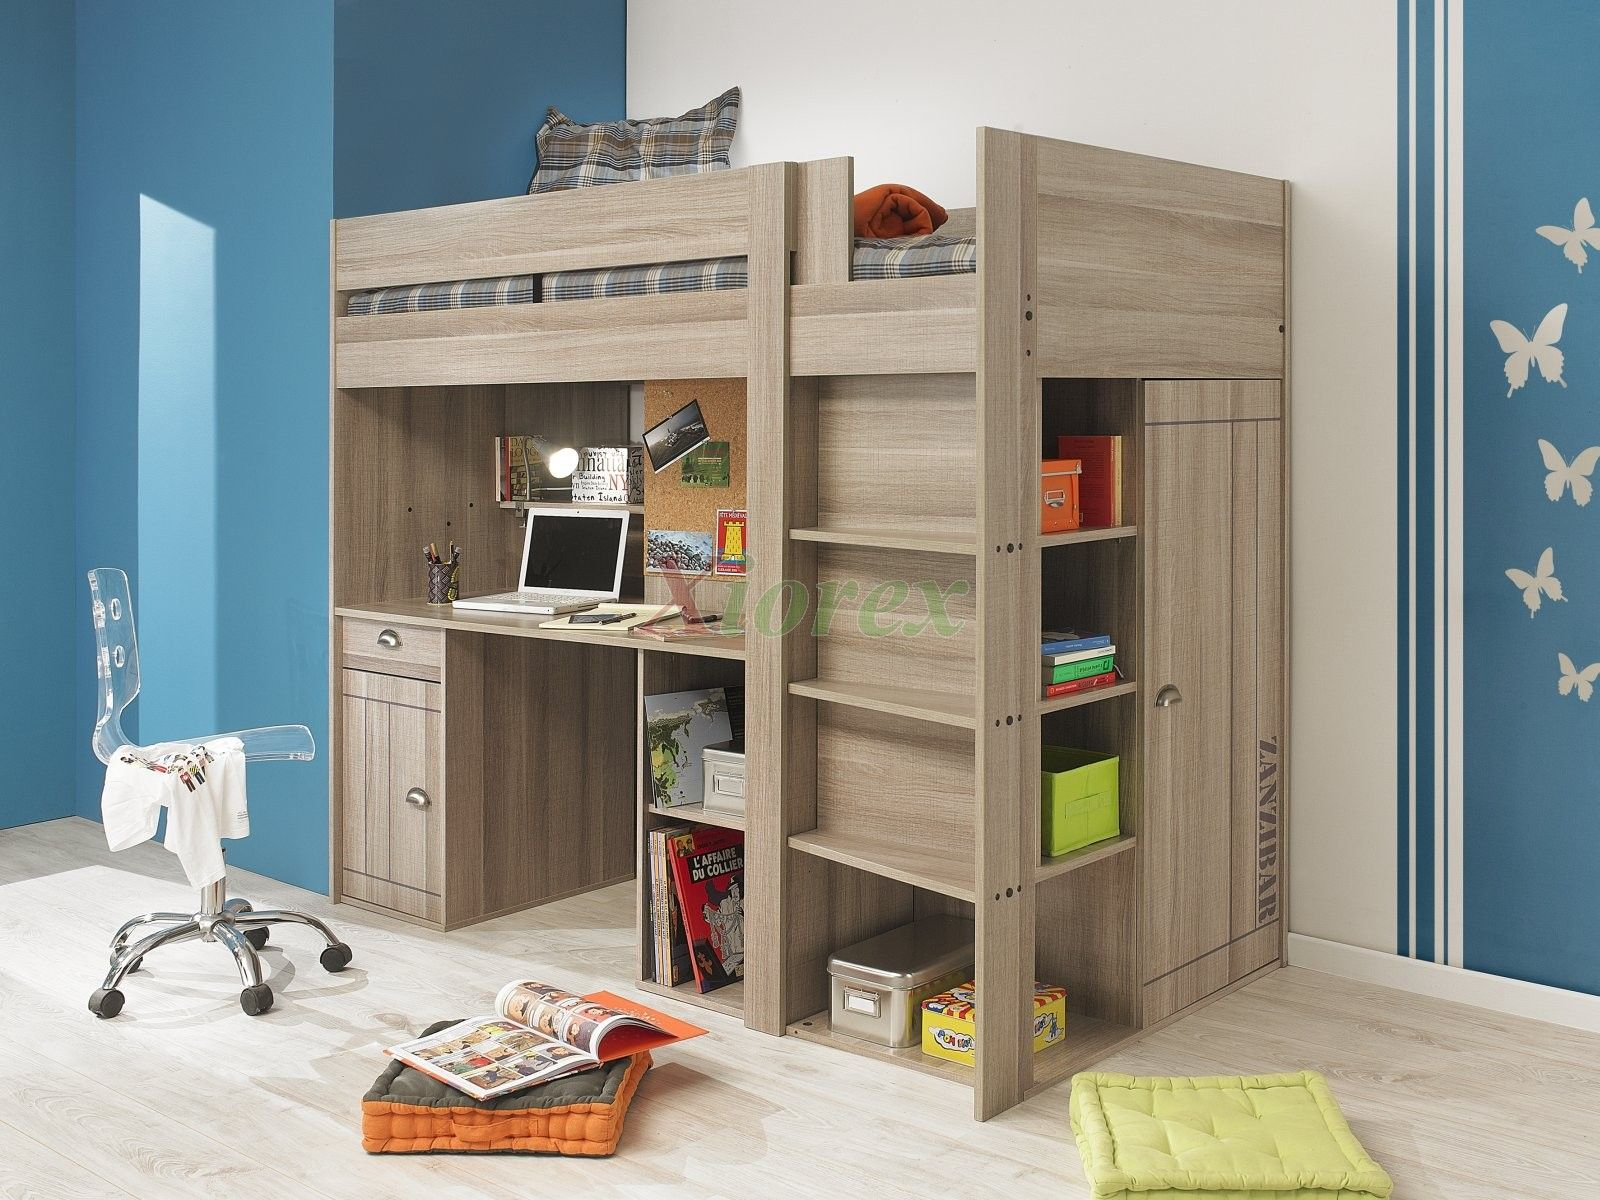 Gami Largo Loft Beds For Teens Canada With Desk Closet Xiorex Loft Beds For Teens Bed With Desk Underneath Bunk Bed With Desk